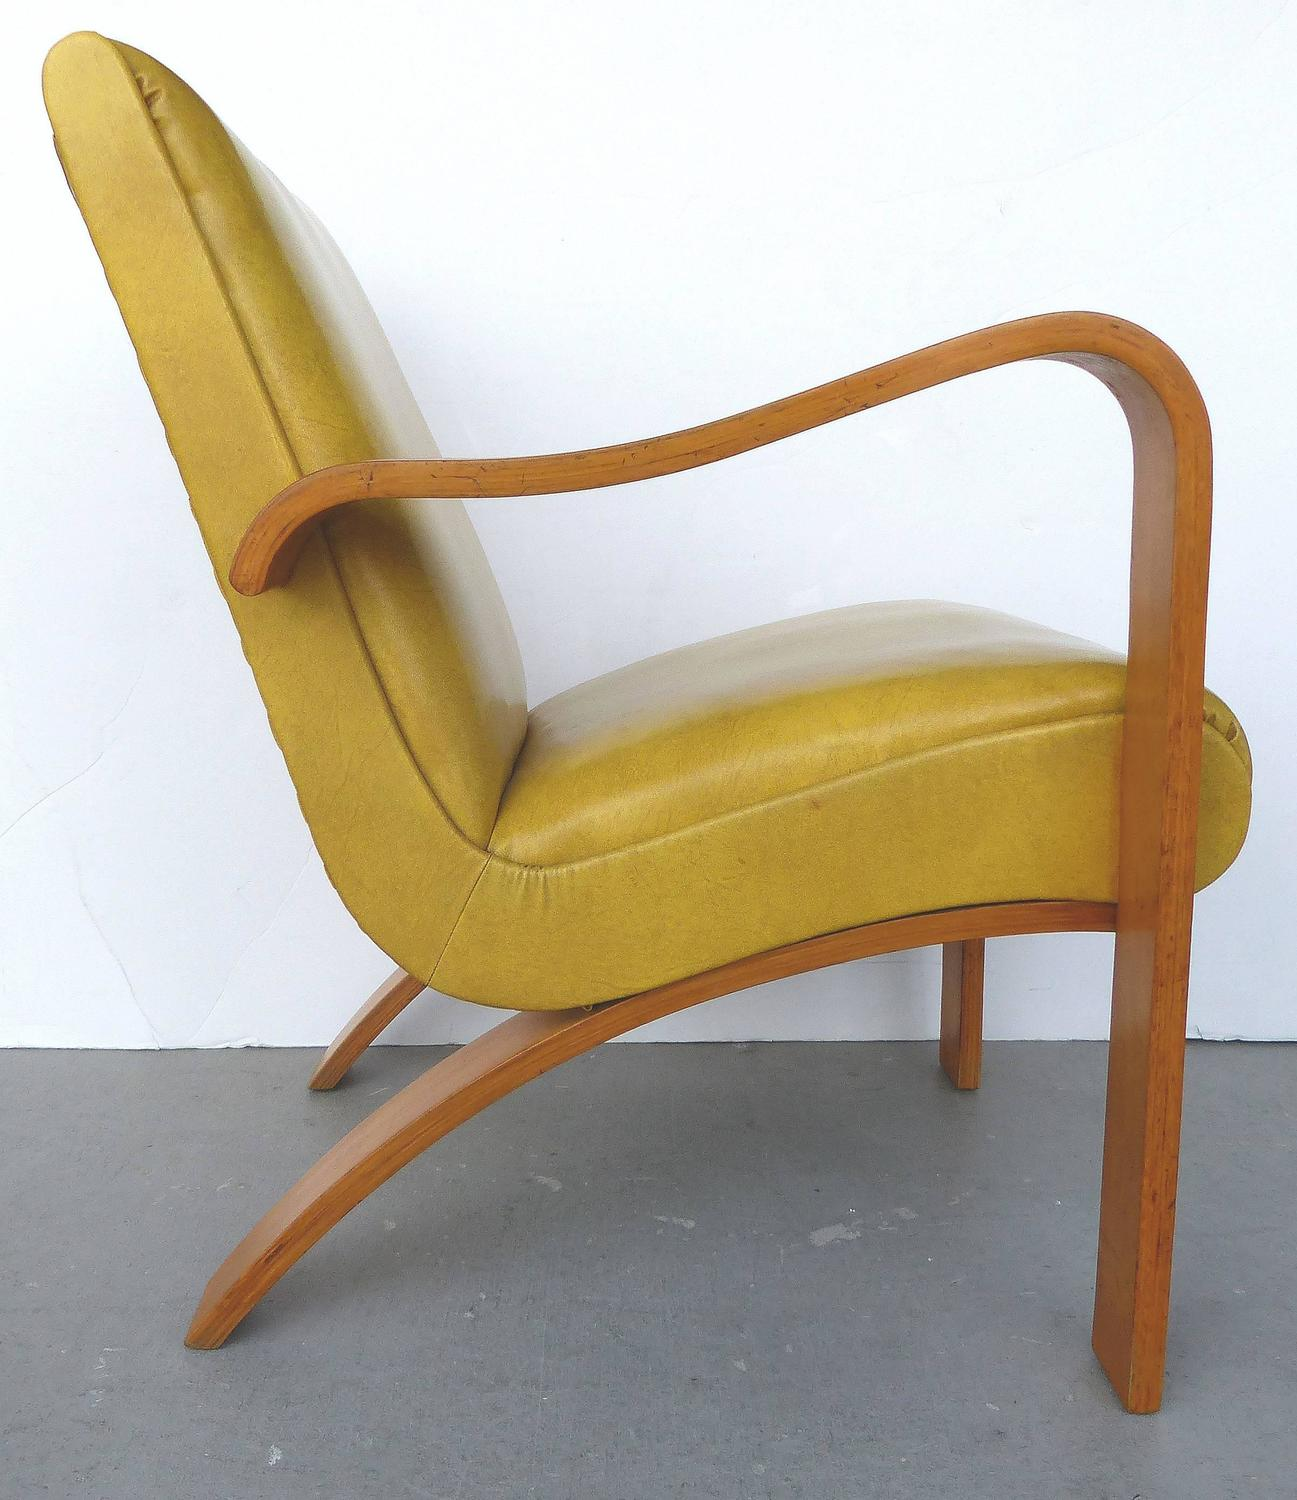 1940s Thonet Bentwood Lounge Chairs With Opposing Arms For Sale At 1stdibs